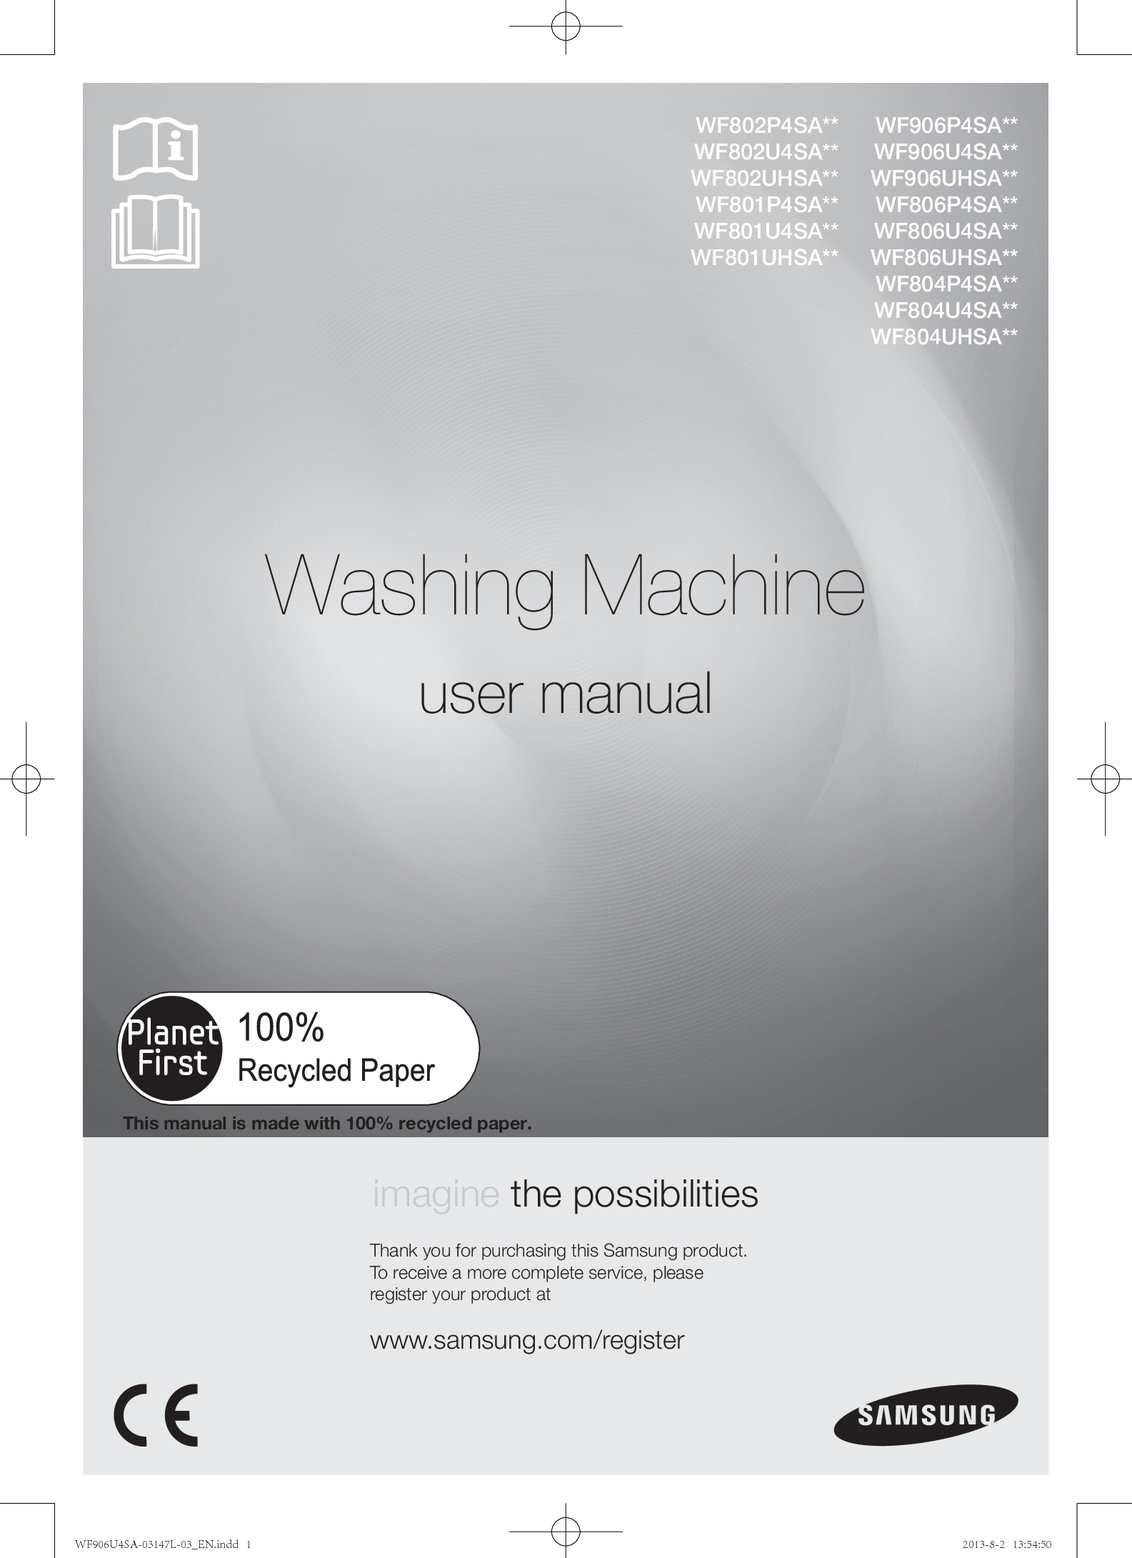 Calamo washing machine user manual wf 906 u4 samsung biocorpaavc Images